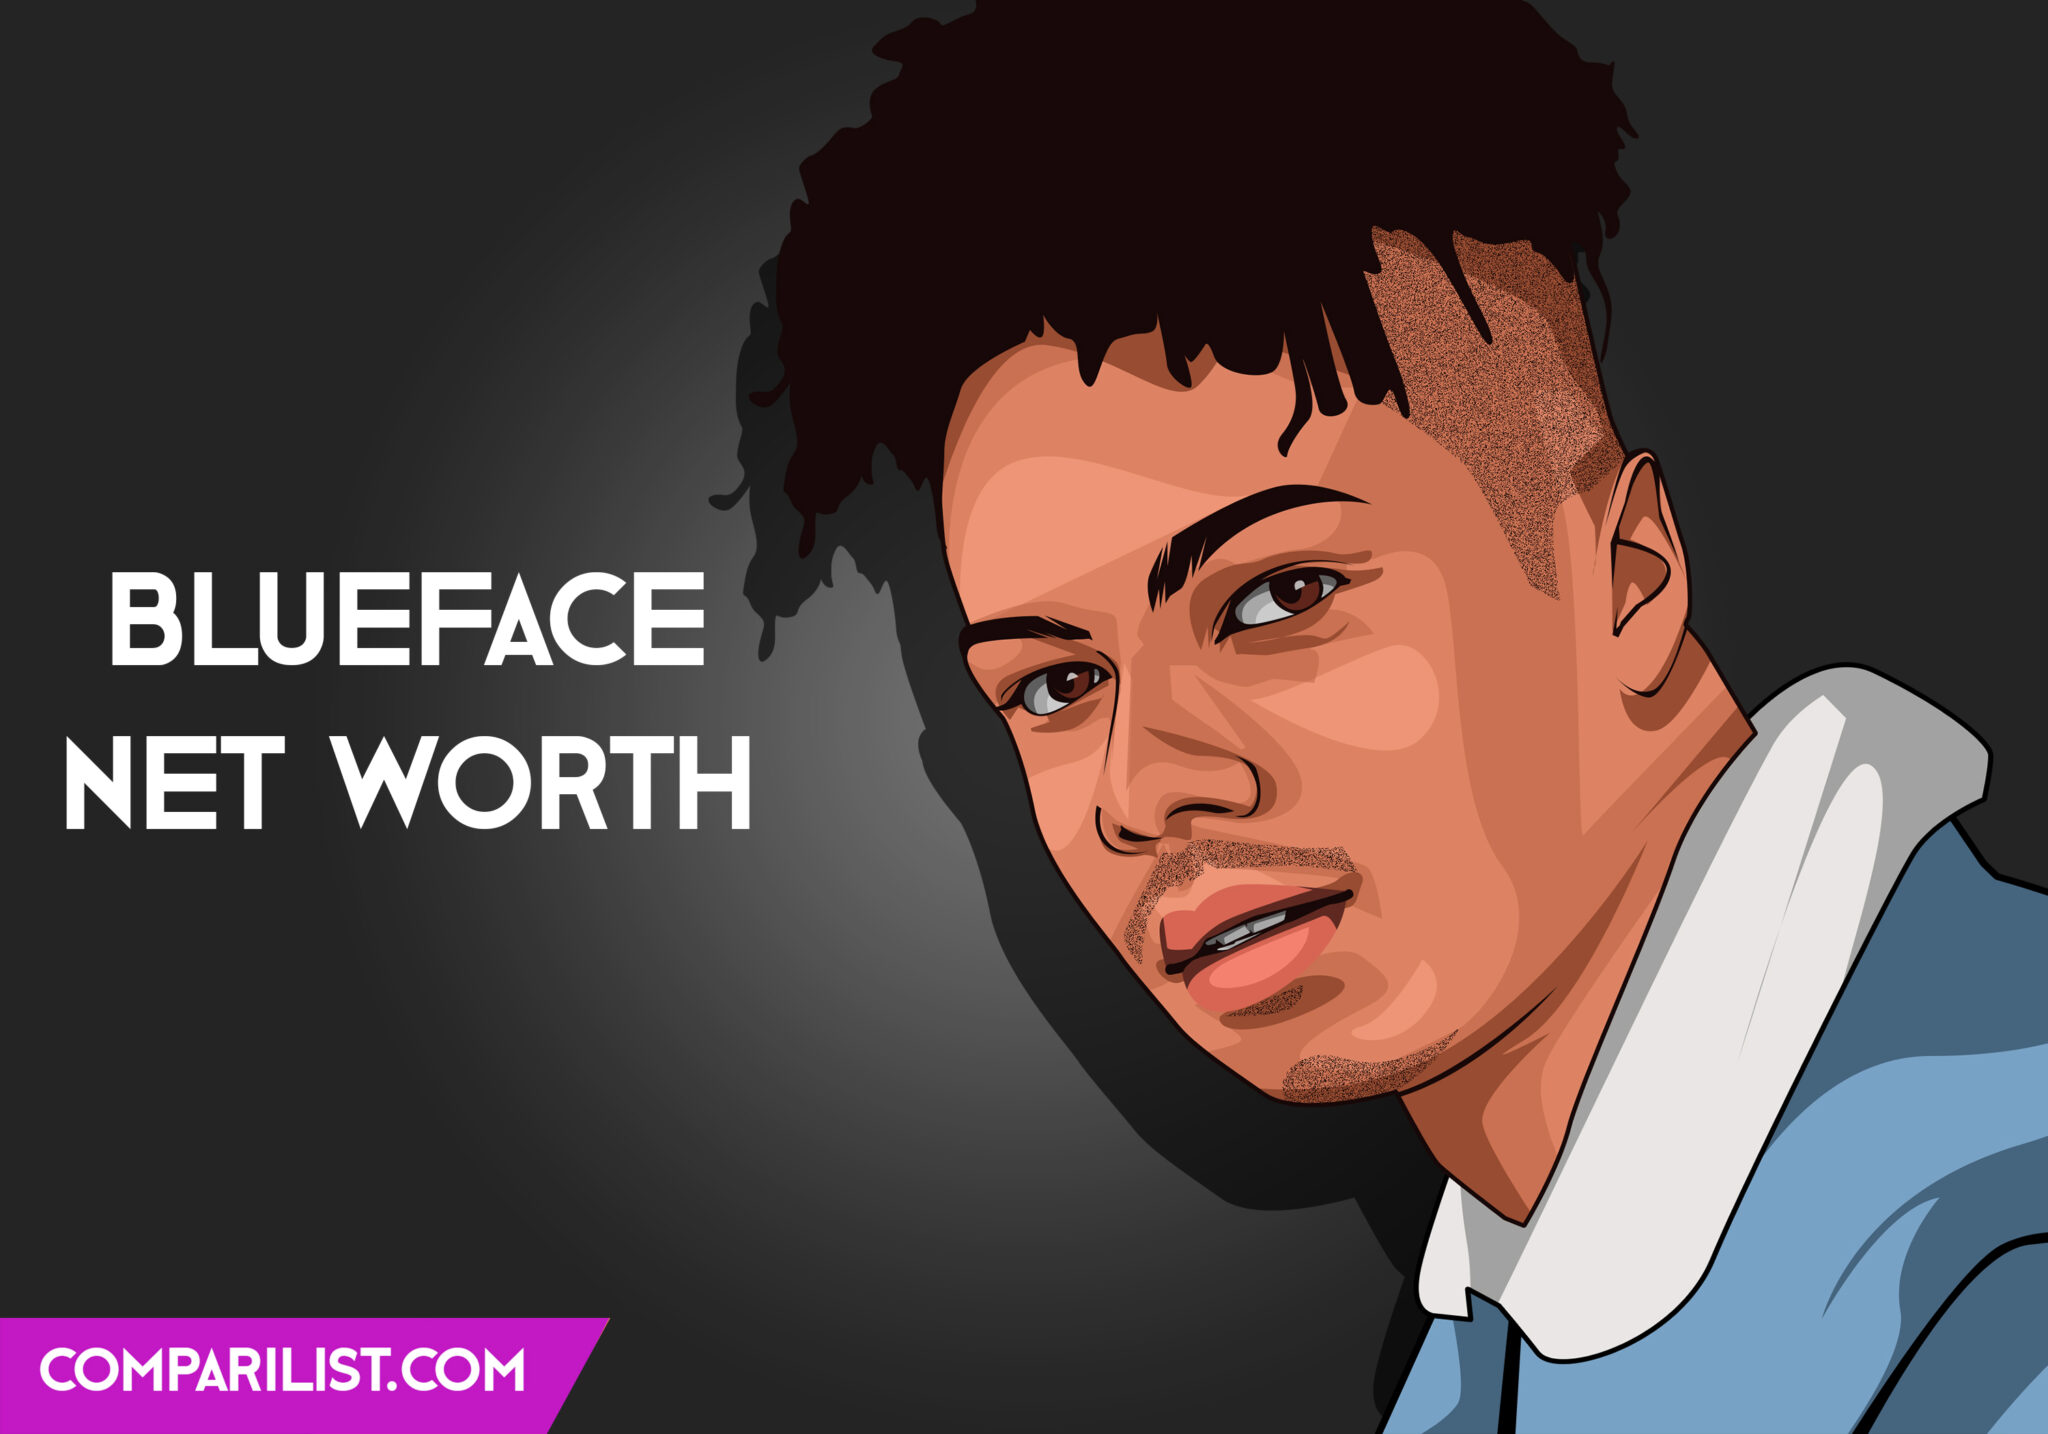 Blueface Net Worth 2019 | Sources of Income, Salary and More